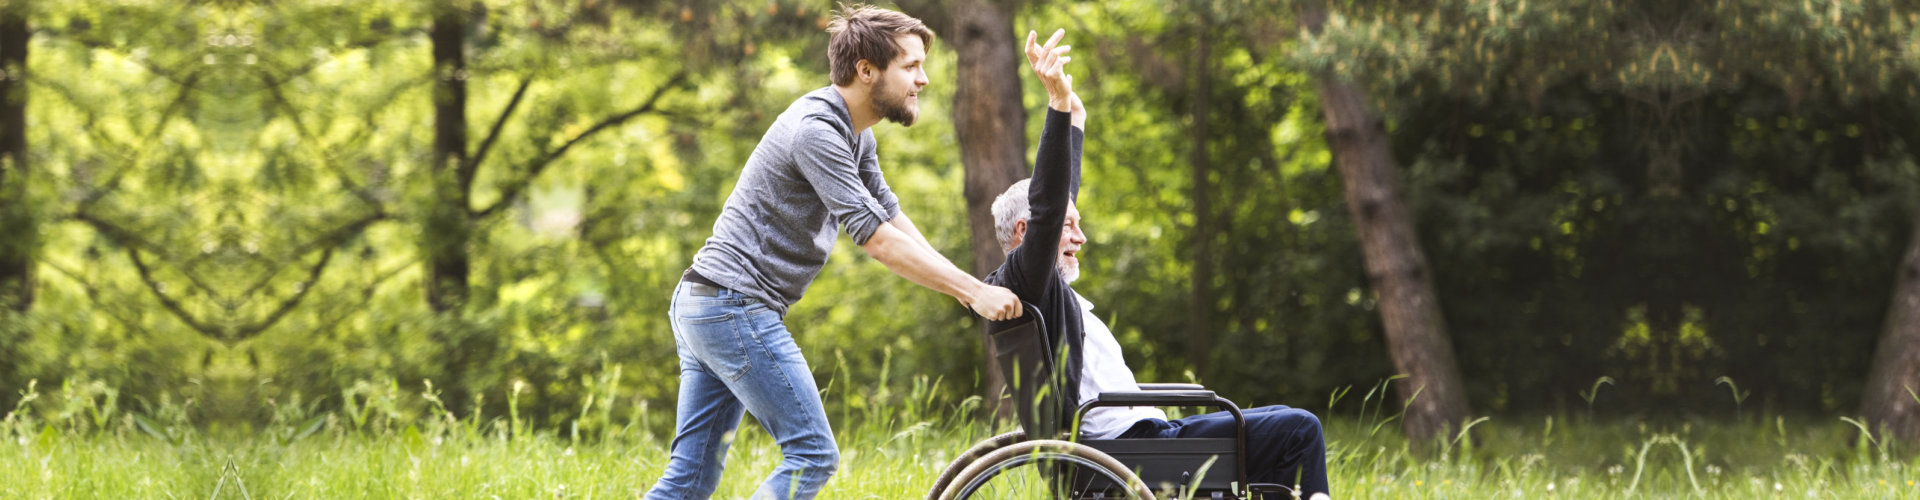 caregiver and his patient on a wheelchair having a good time